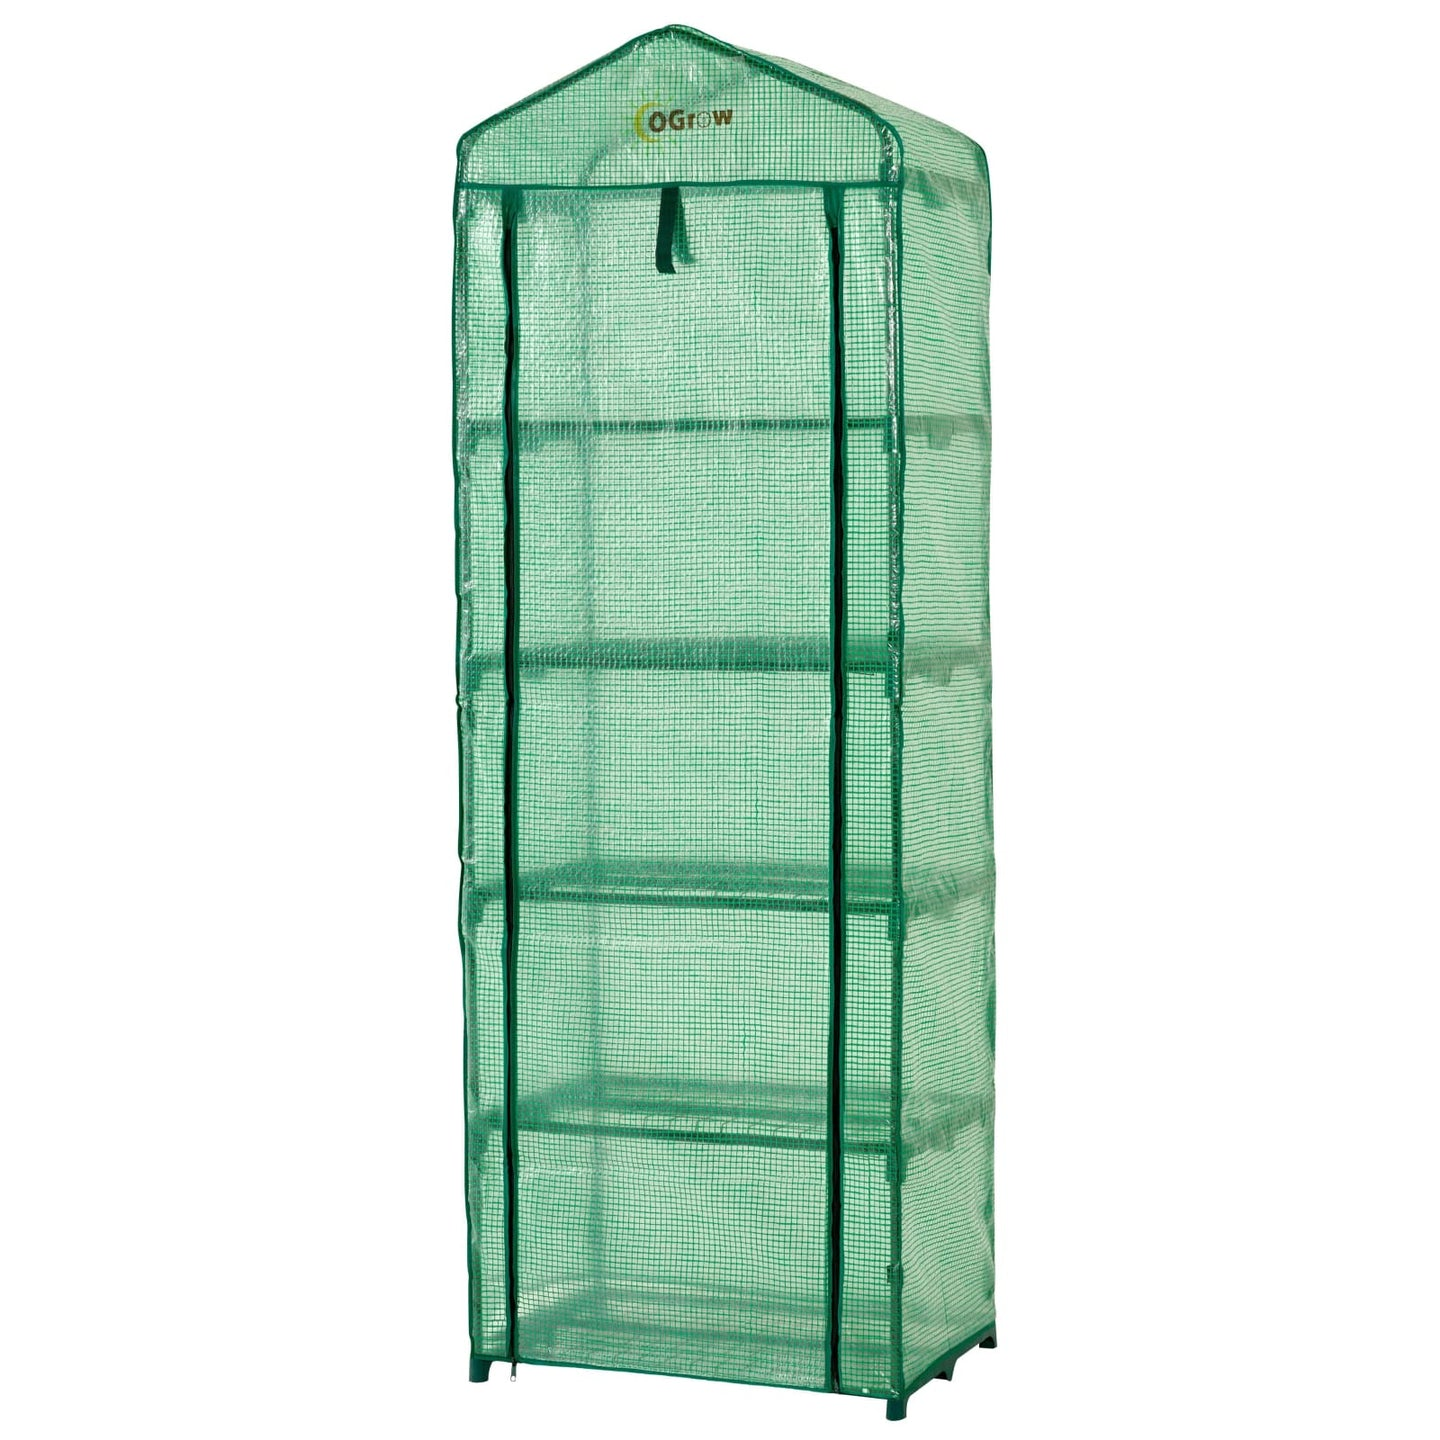 Ogrow Ultra-Deluxe 5 Tier Portable Gardenhouse Greenhouse - Og2719-5T - Greenhouses & Accessories